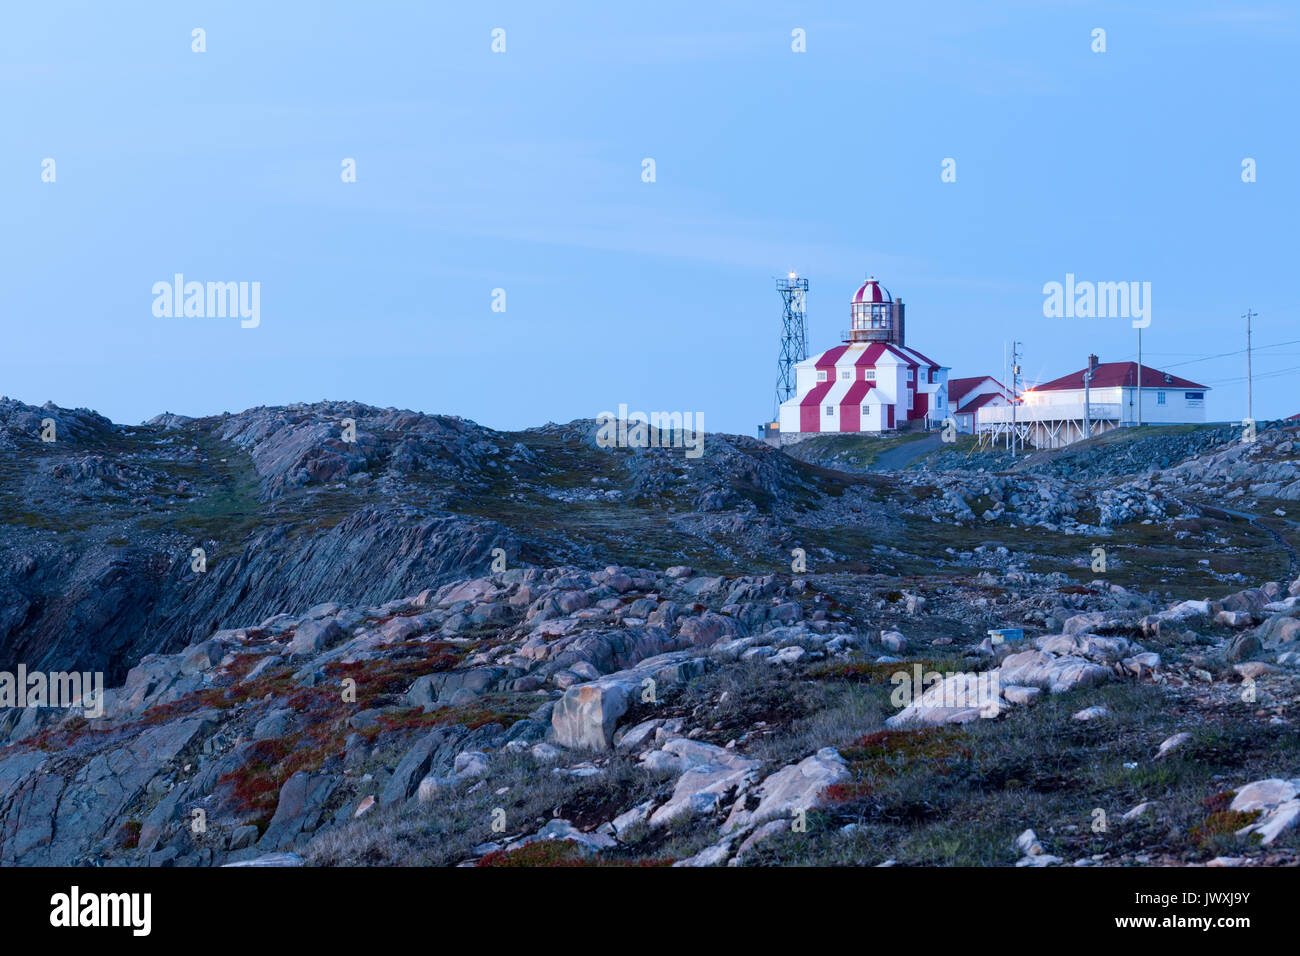 The Cape Bonavista Lighthouse seen here at dusk was in operation from 1842-1962. It is now a museum and is a Provincial Historic Site. Cape Bonavista. - Stock Image